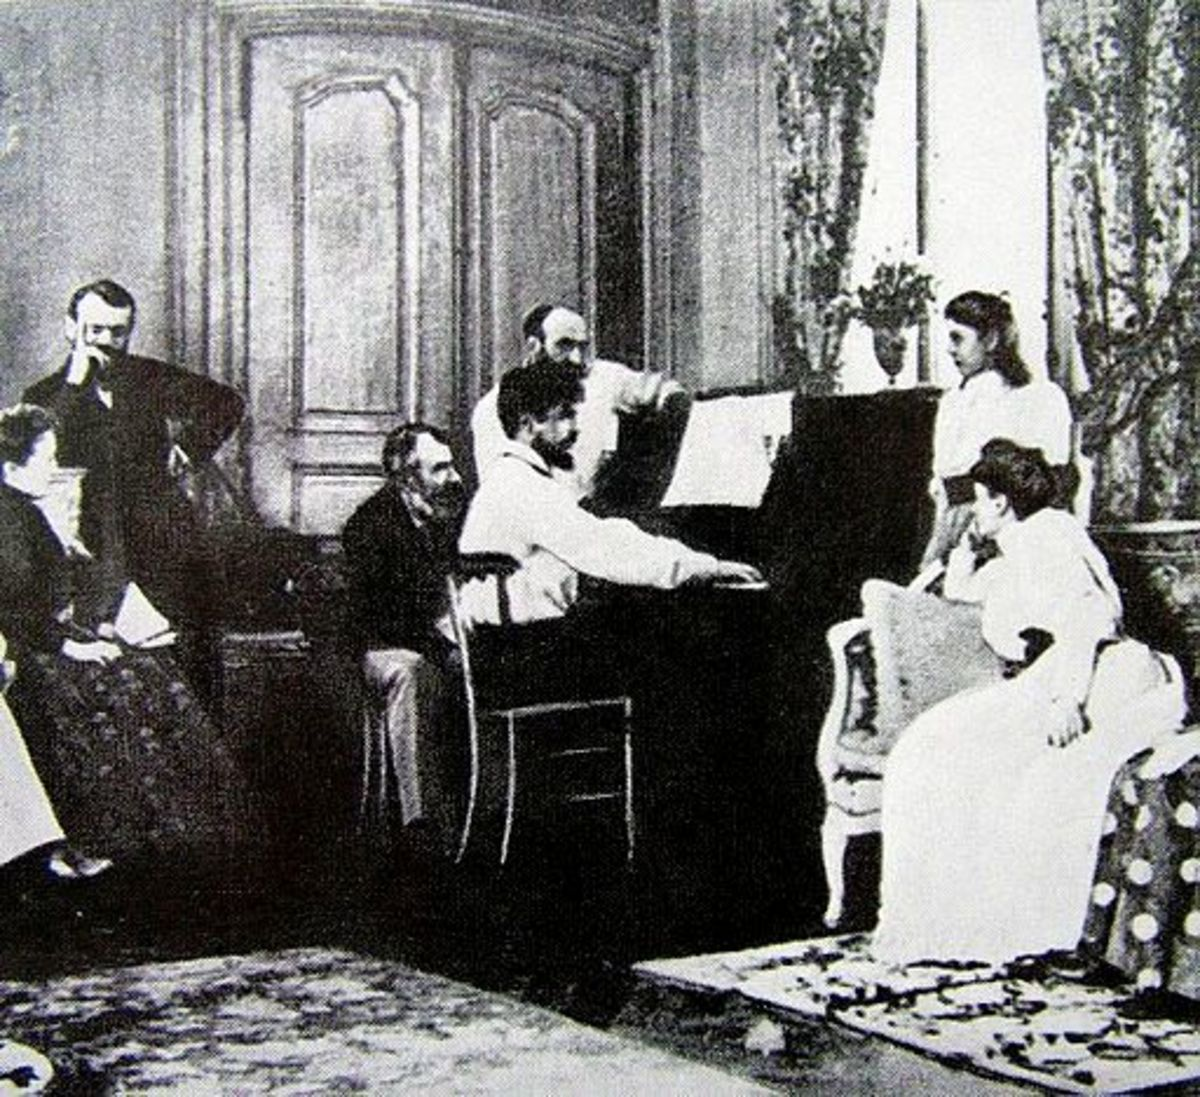 Playing in front of composer, Ernest Chausson